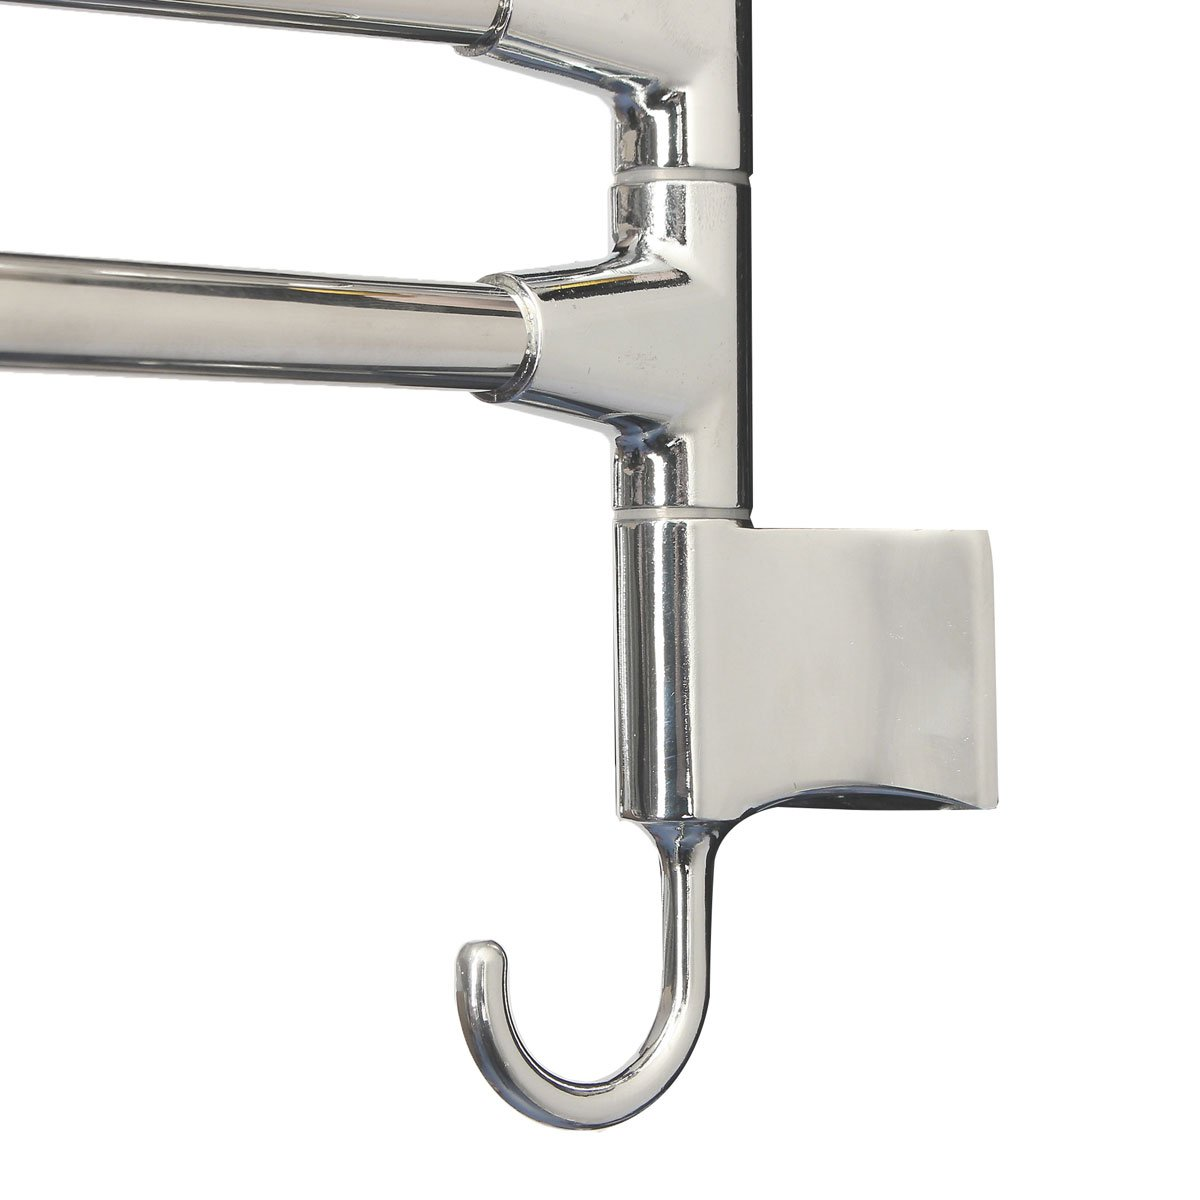 Vivona Hardware & Accessories Bathroom Kitchen Wall Mounted Rotating Towel Rack Storage Hold by Vivona (Image #3)